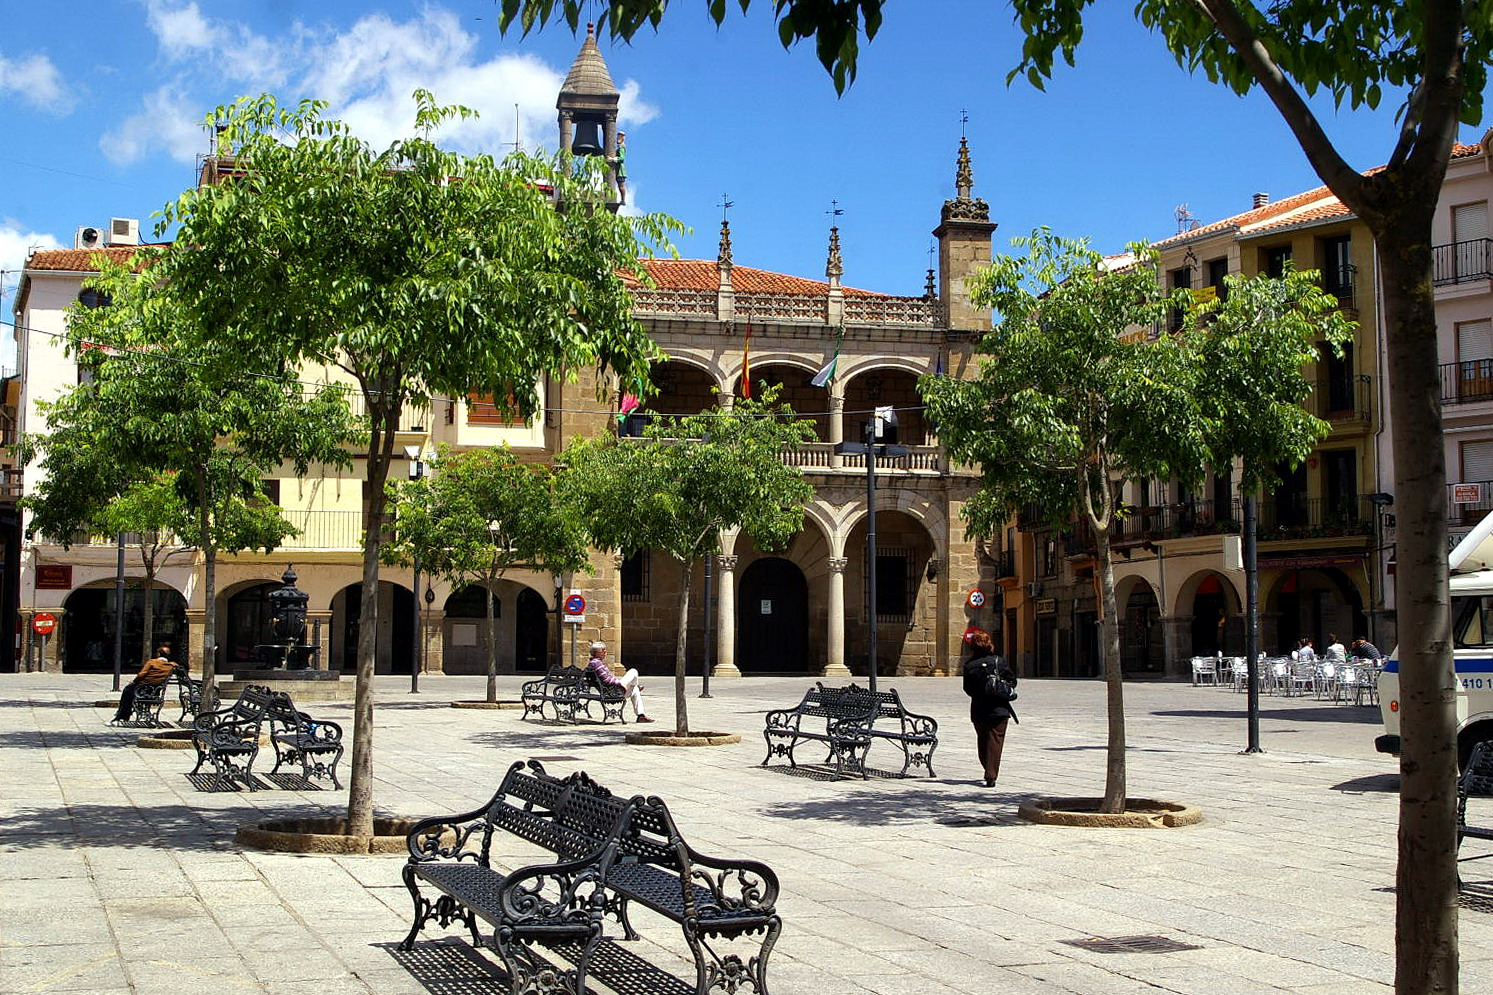 Plaza mayor, Plasencia